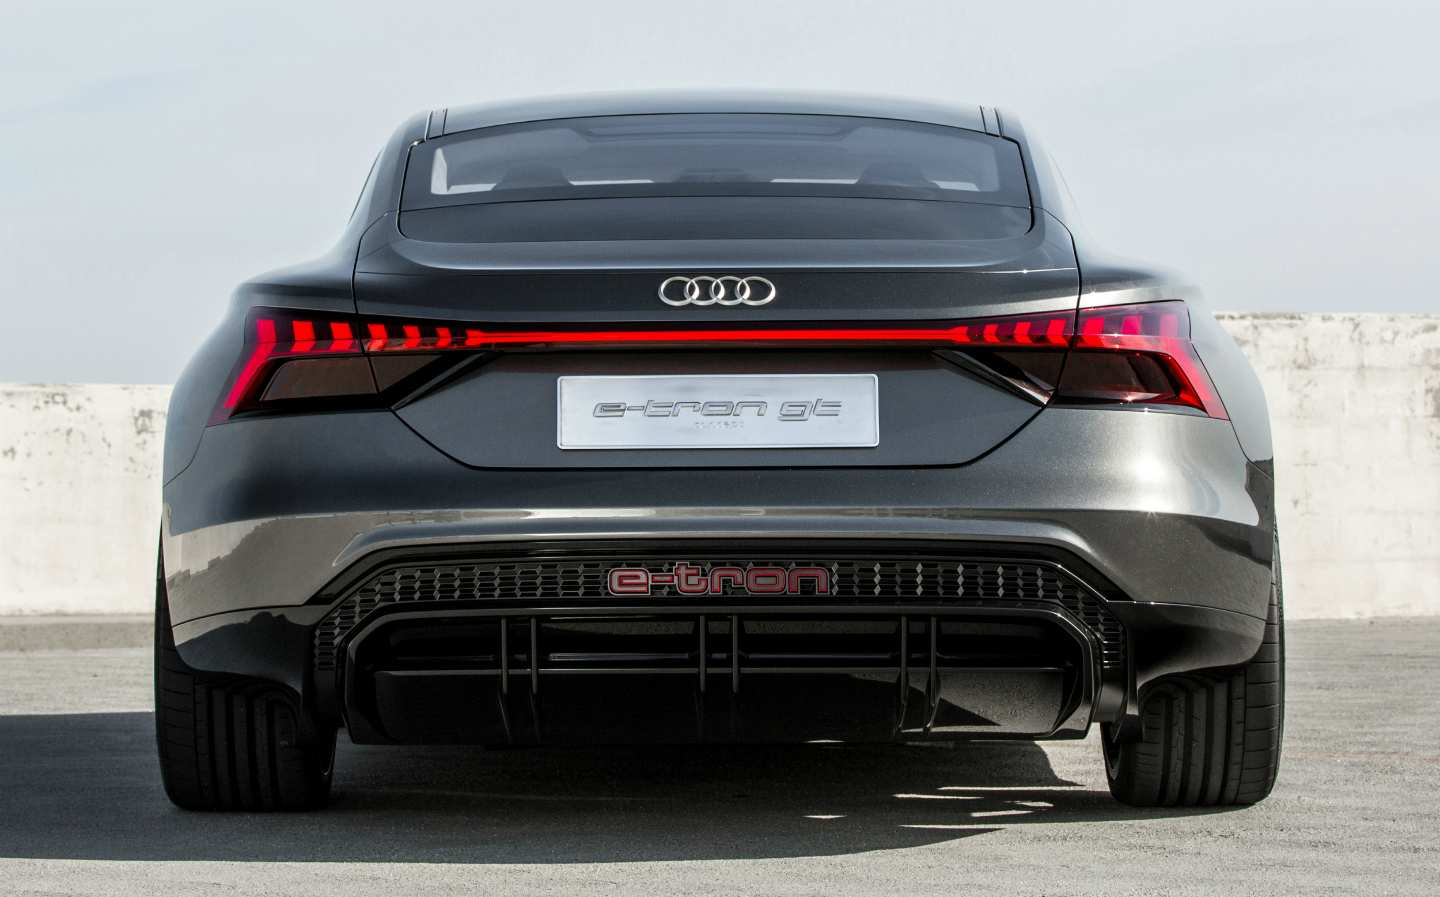 52 Gallery of 2020 Audi E Tron Gt Prices for 2020 Audi E Tron Gt